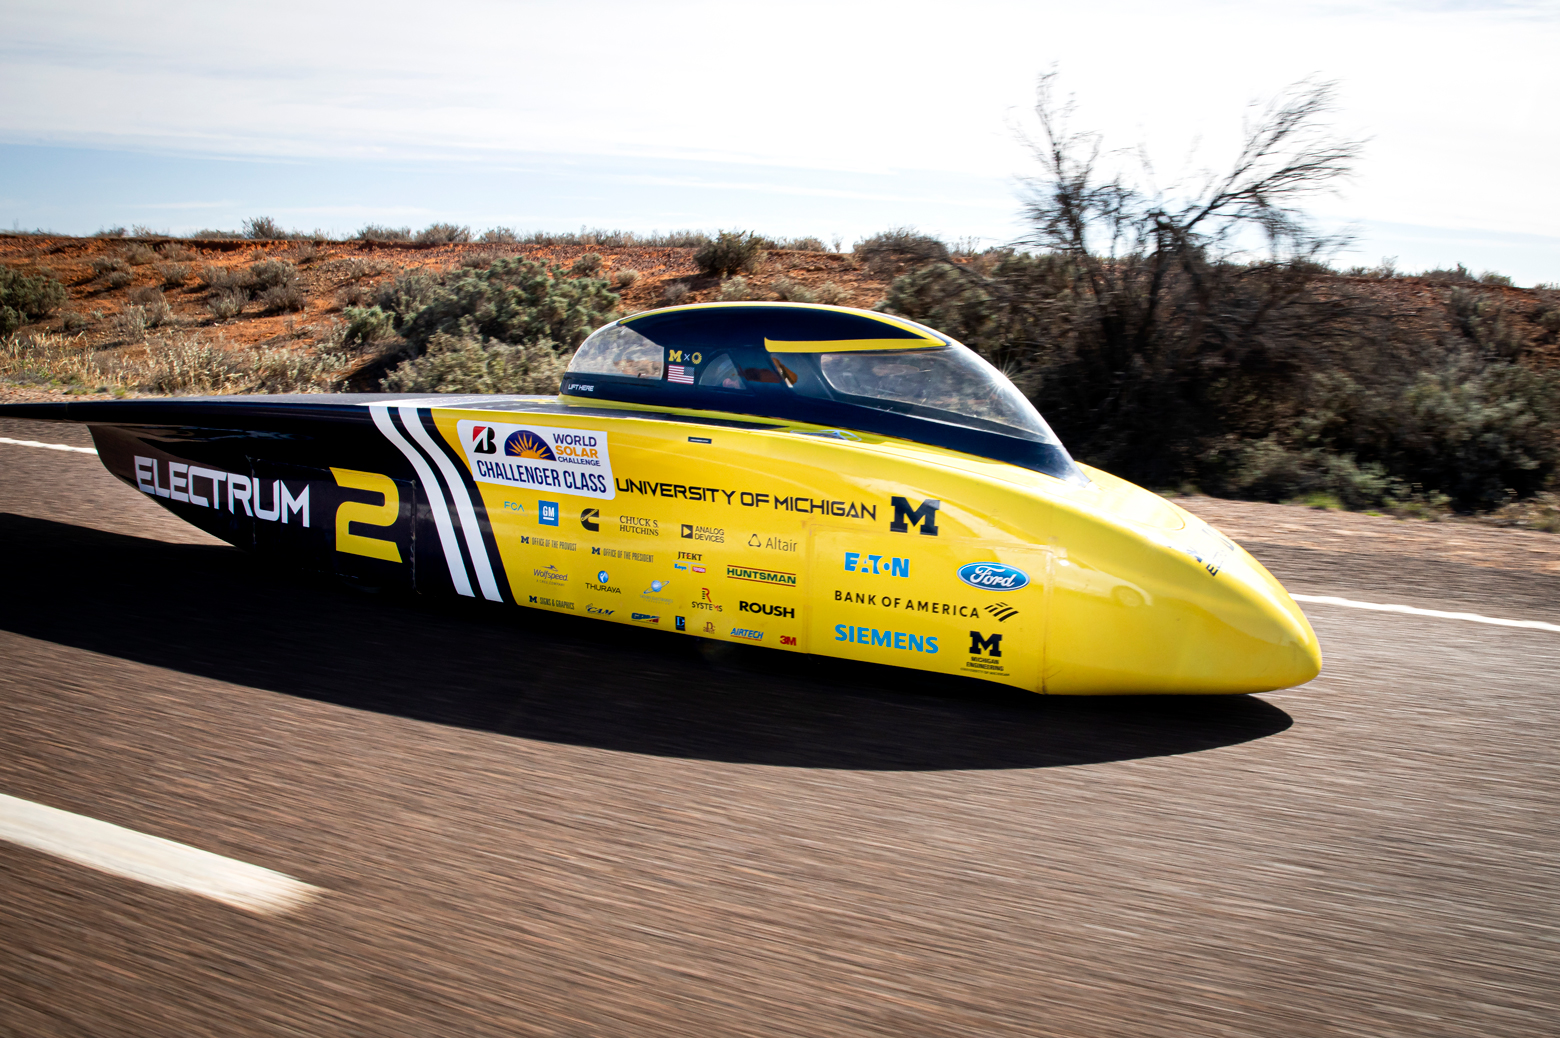 Electrum cruises down Australia's Stuart Highway in third place on the final day of racing. Photo: Joseph Xu/Michigan Engineering